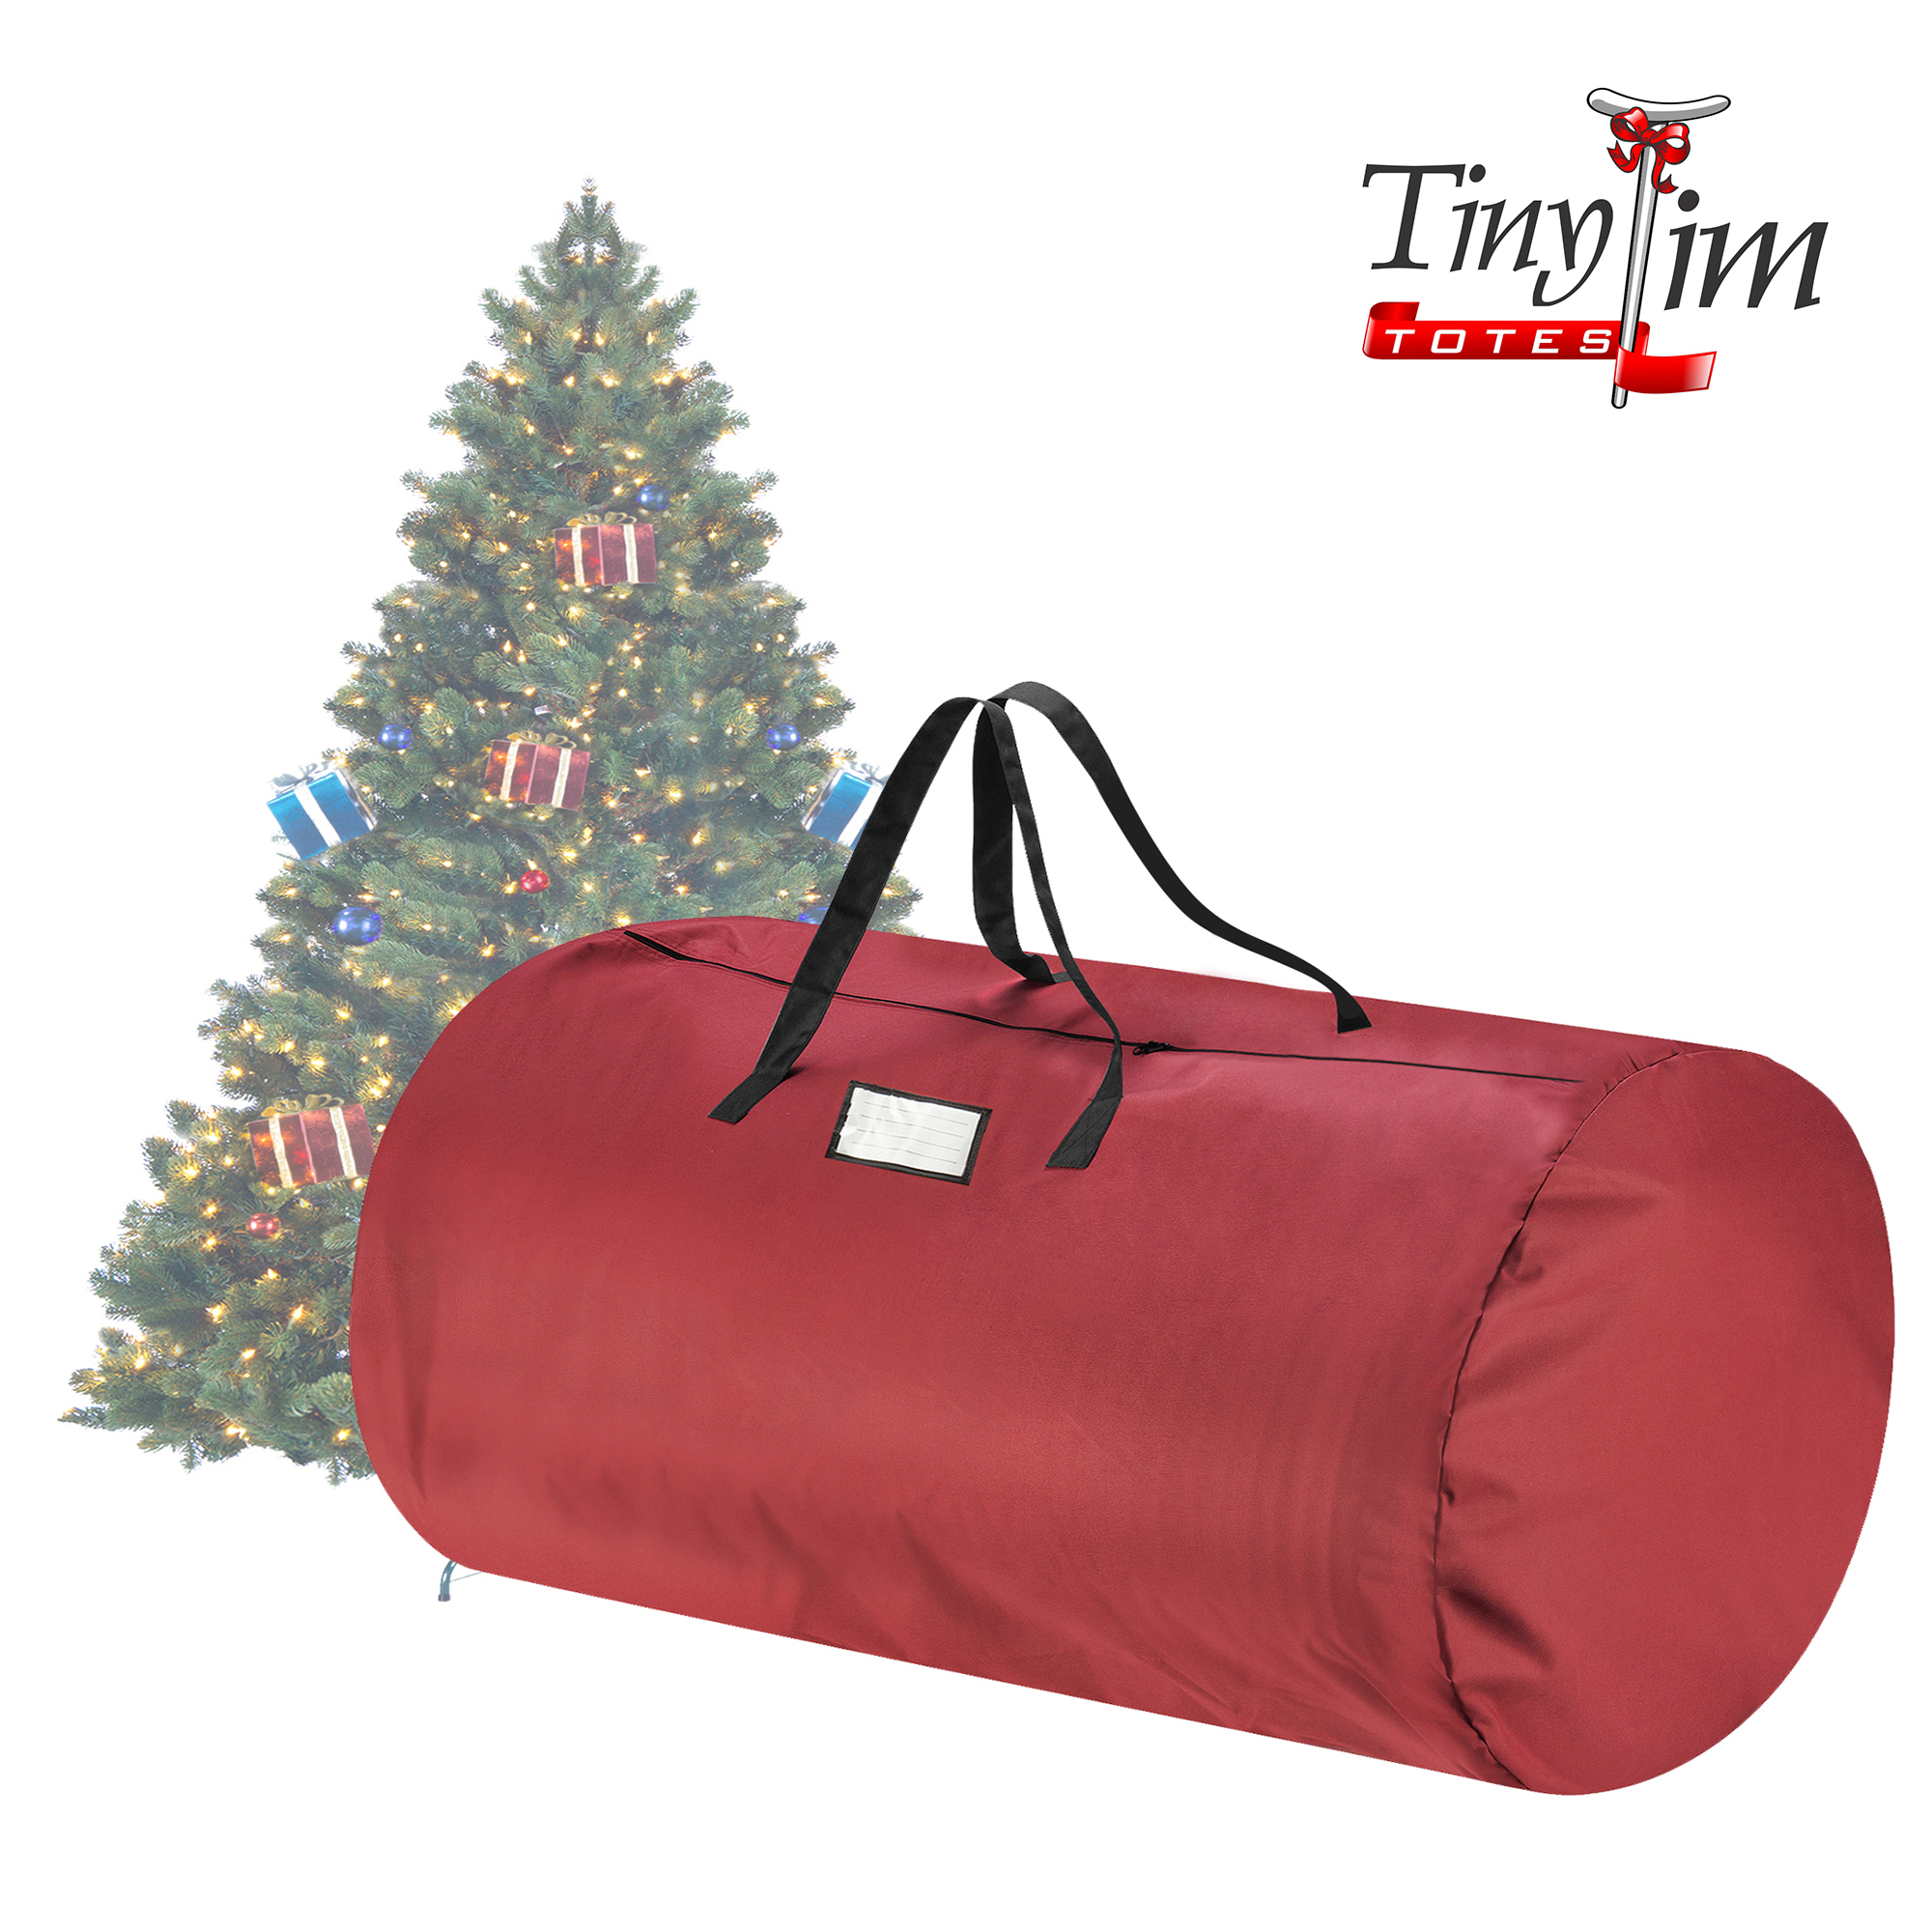 Tiny Tim Totes | Canvas Christmas Tree Storage Bag | Extra Large For 9 Foot Tree | Red